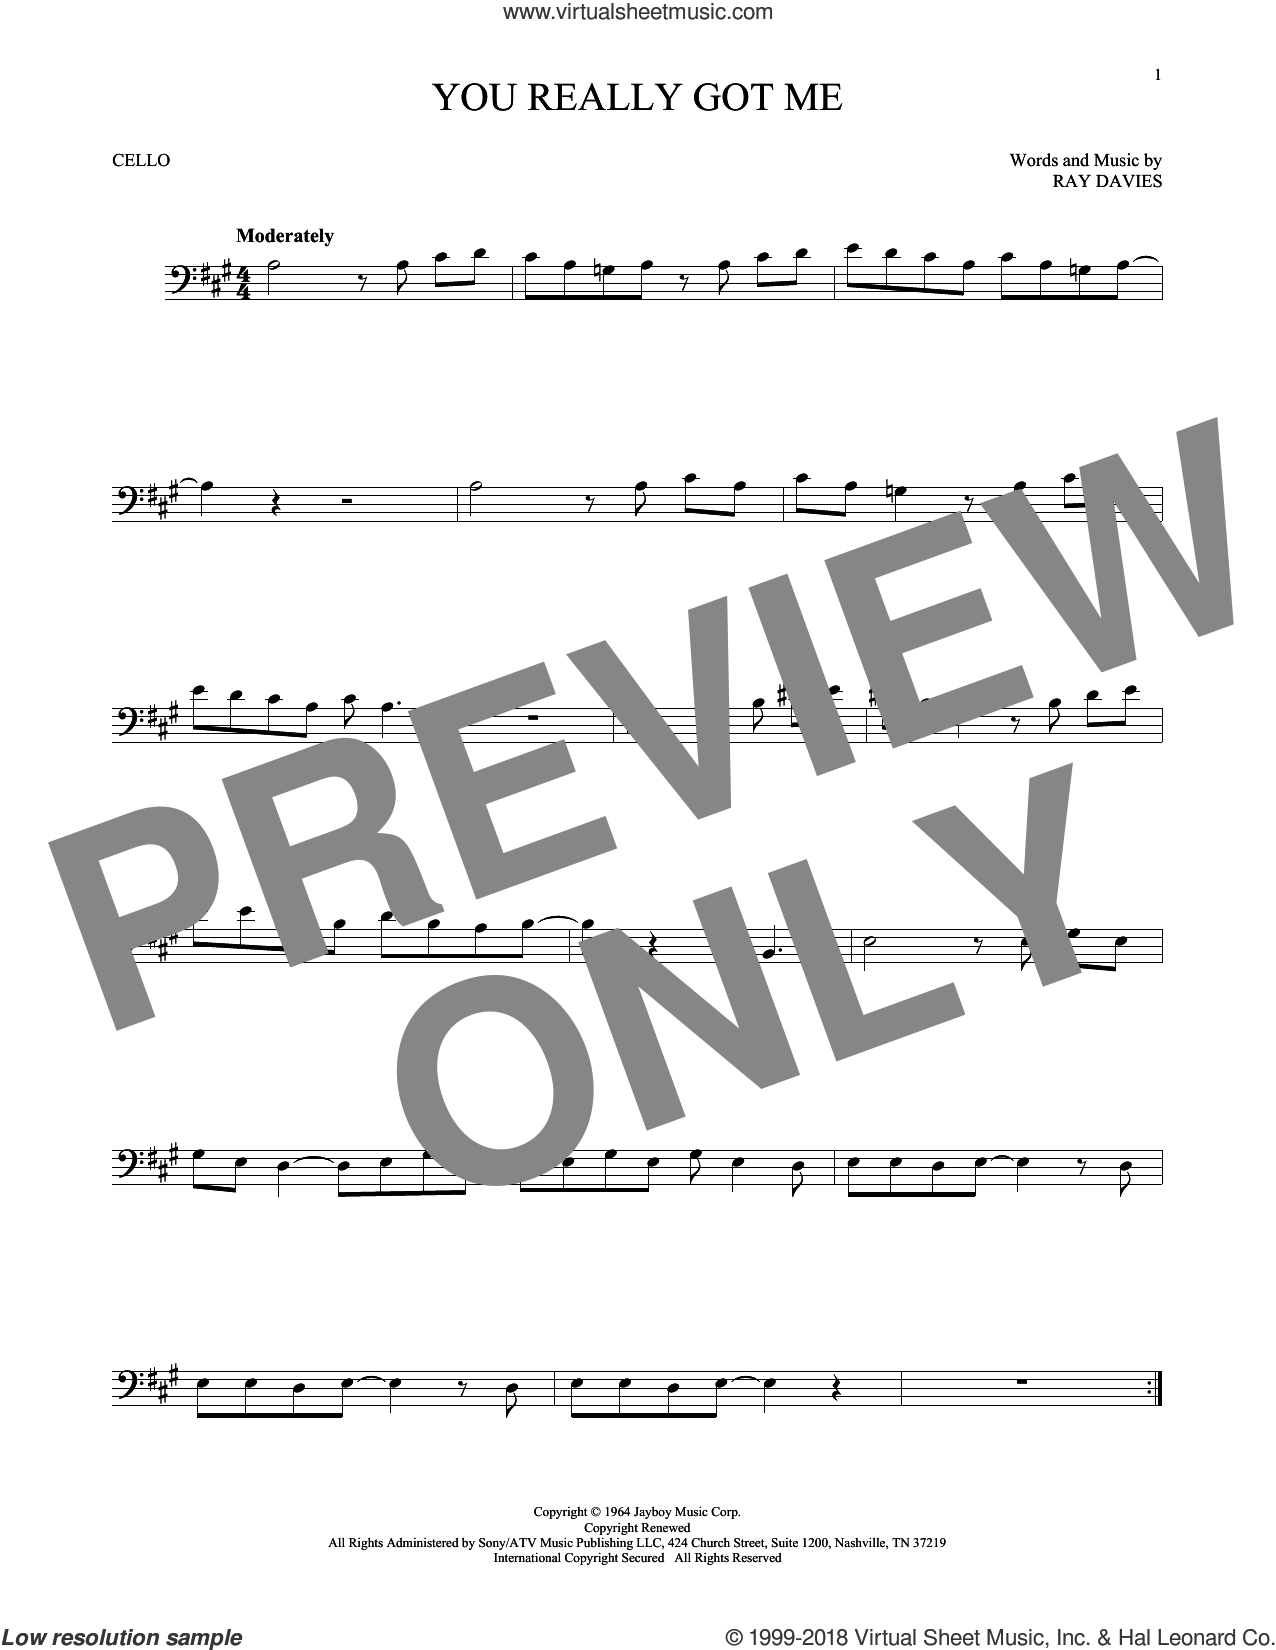 You Really Got Me sheet music for cello solo by The Kinks, Edward Van Halen and Ray Davies, intermediate skill level